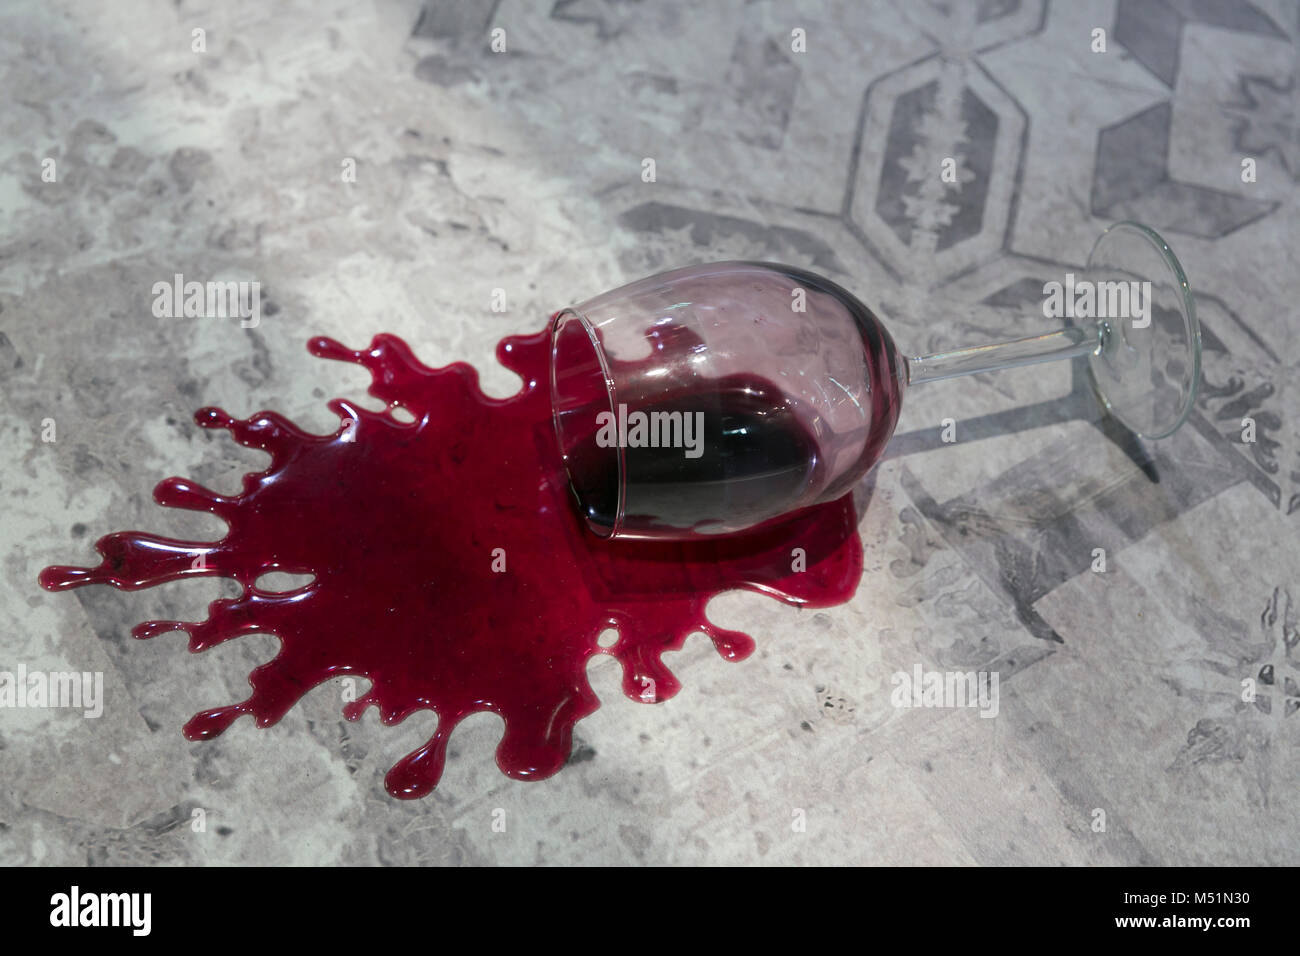 tumbled glass with red wine - Stock Image